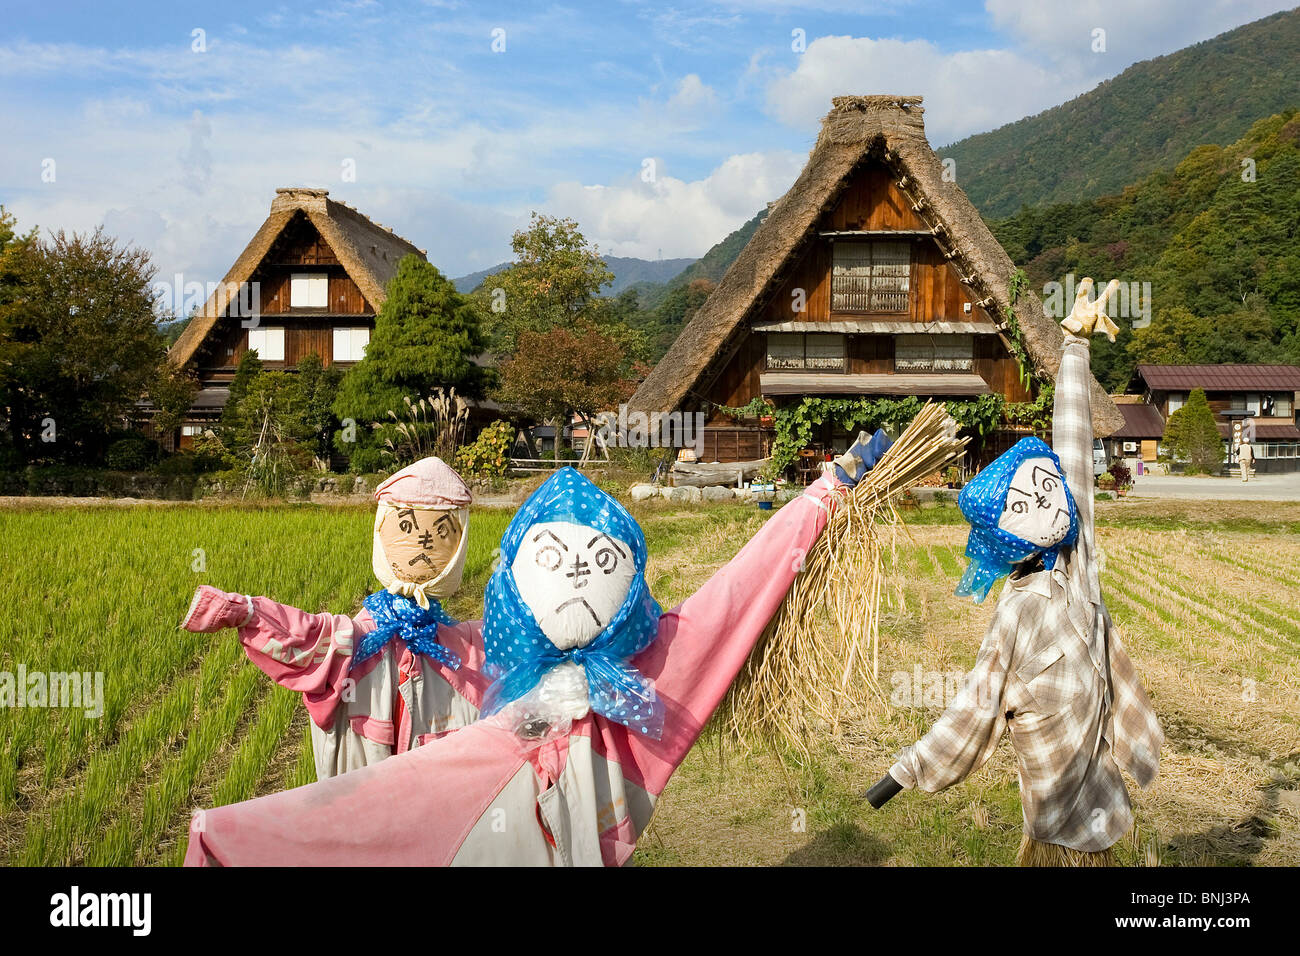 Japan Asia Shirakawa Go city straw roof thatched roof houses homes UNESCO world cultural heritage straw roof village - Stock Image